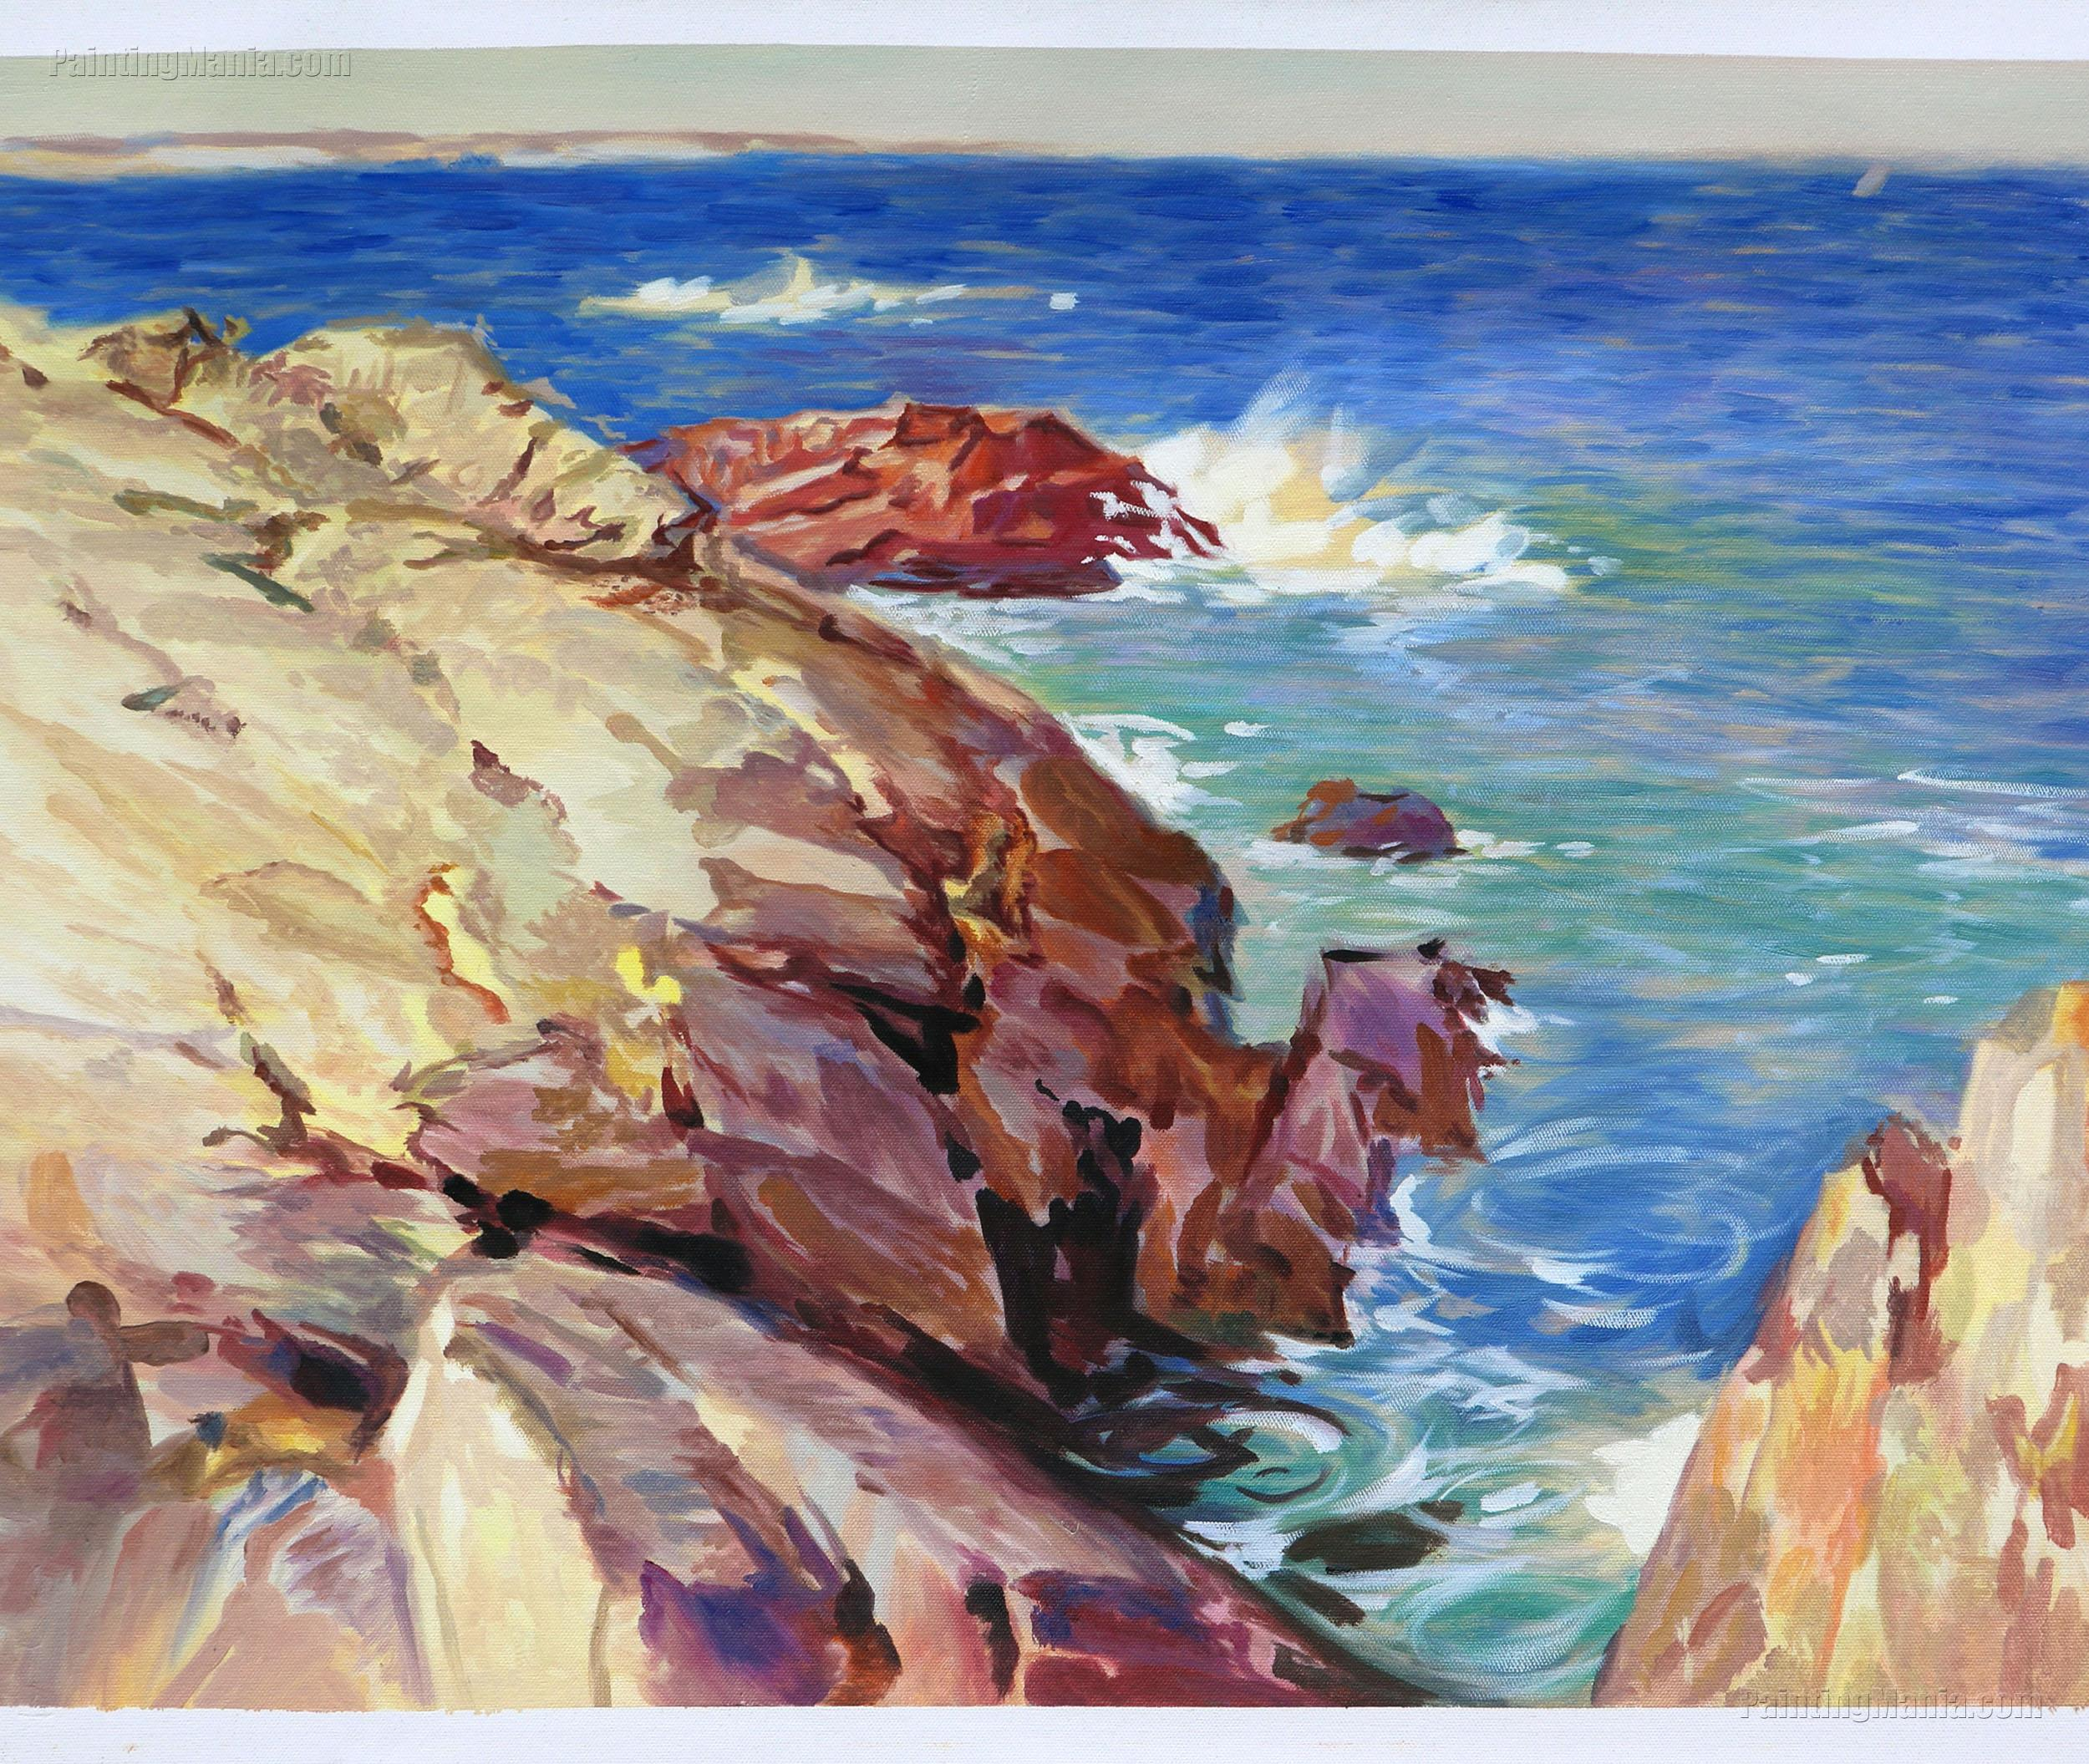 Pirate's Cove, Marginal Way, Ogunquit, Maine